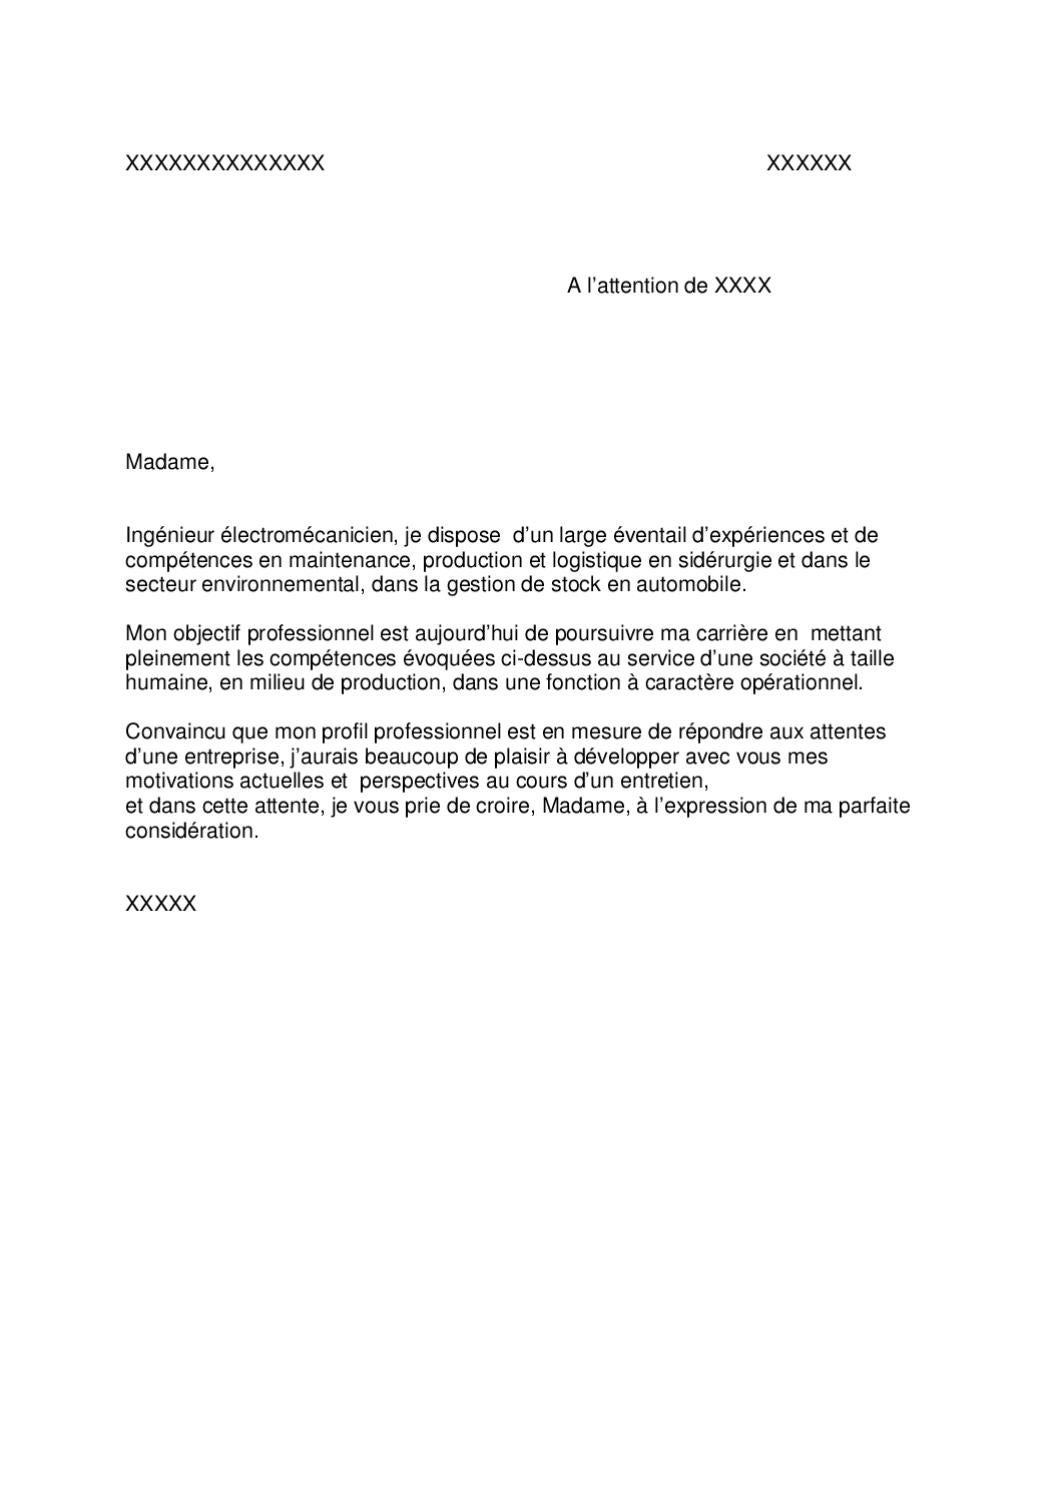 exemple de lettre de motivation  randstad 2  by jobs